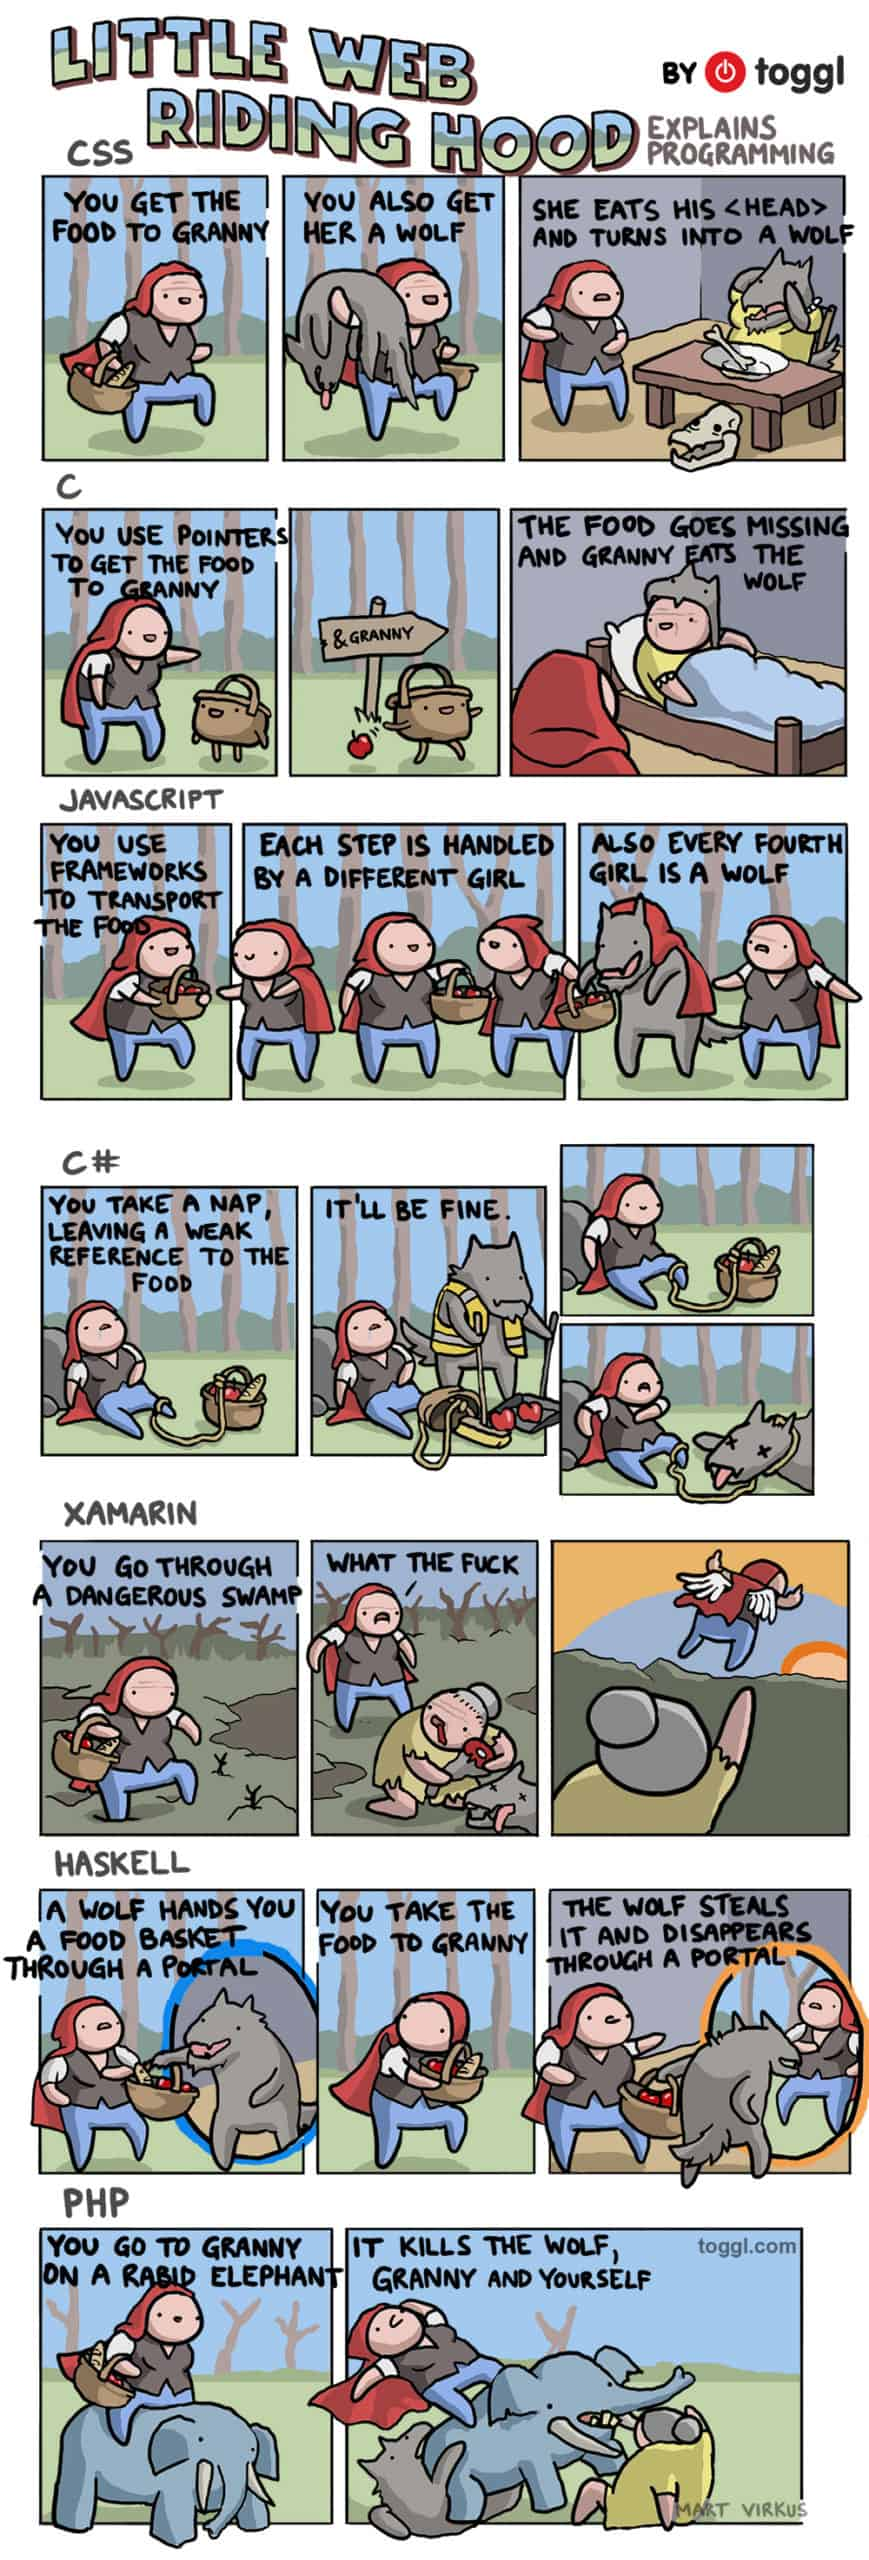 a comic in which each programming language influences the outcome of the little red riding hood fairytale